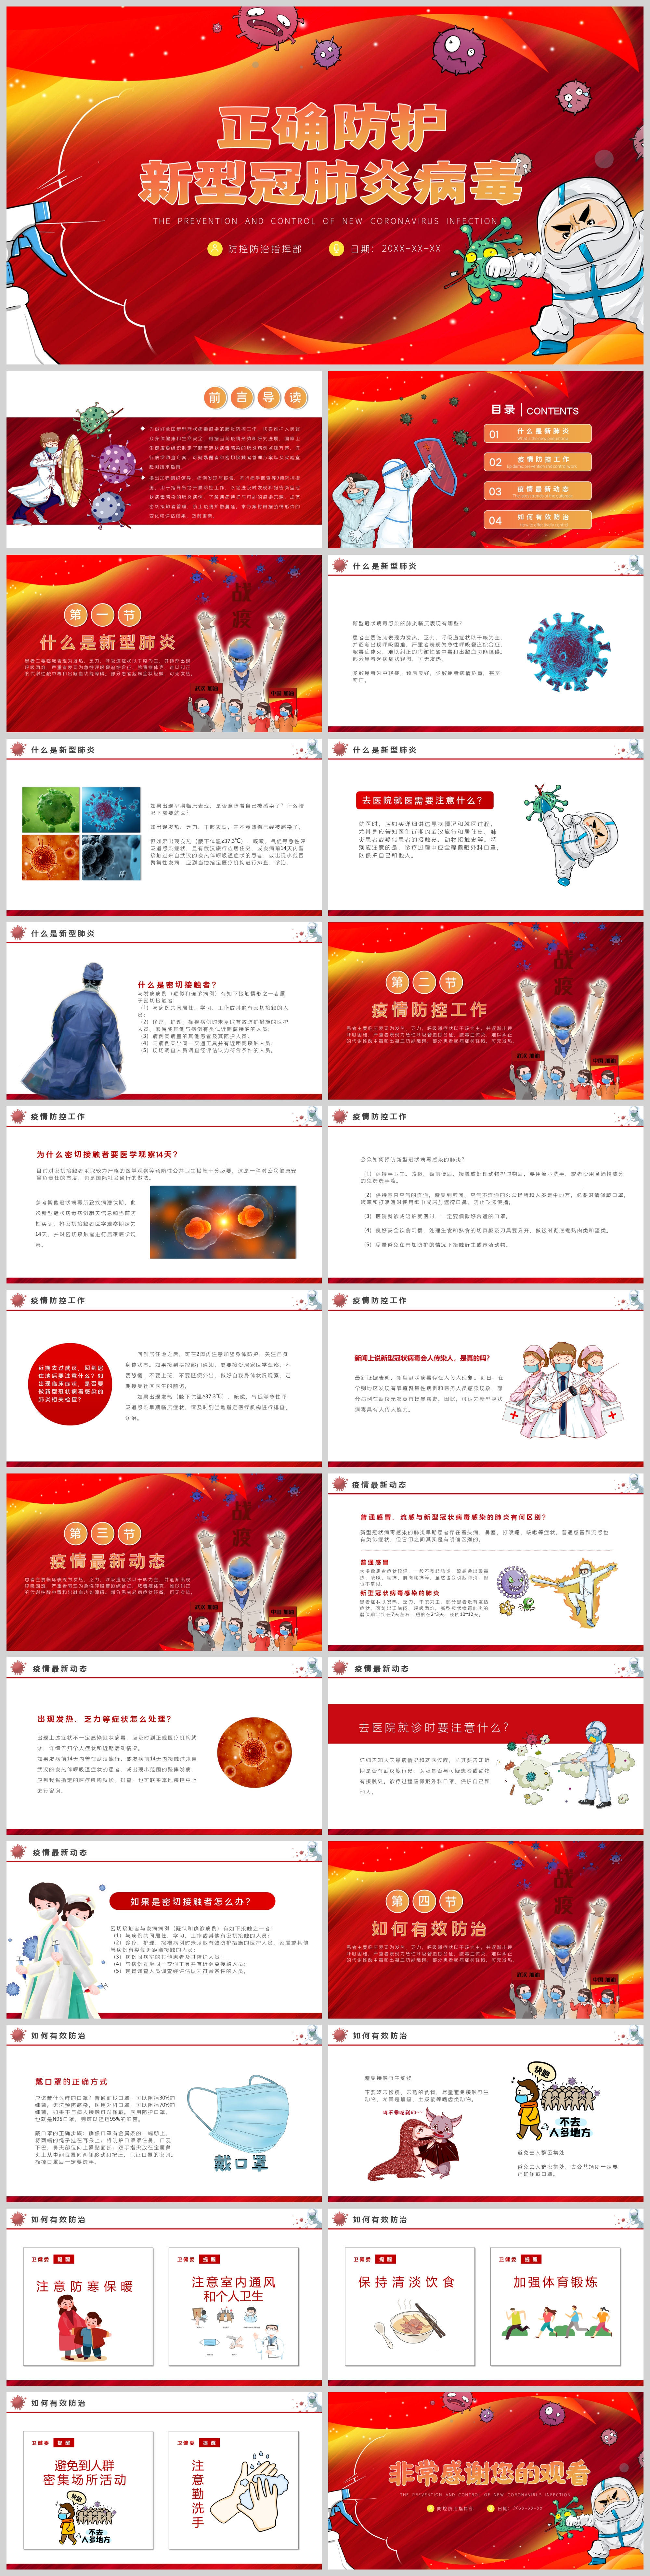 Proper Protection Of New Coronary Pneumonia Virus Ppt Template Powerpoint Templete Ppt Free Download 401678673 Lovepik Com